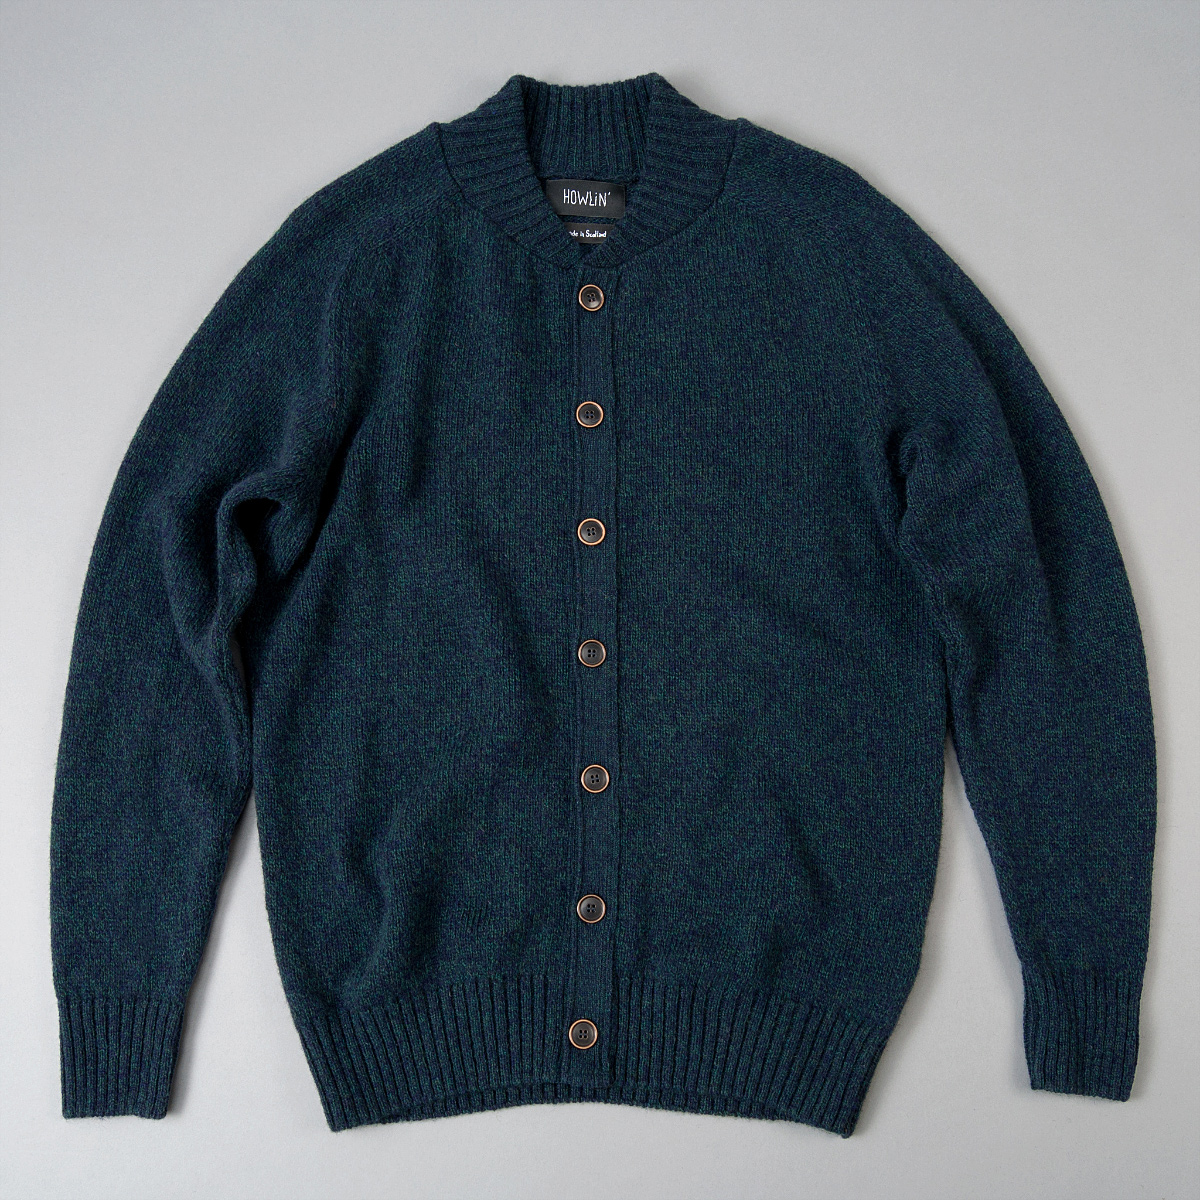 Howlin Four Eyes Cardigan, Navy Green Mix